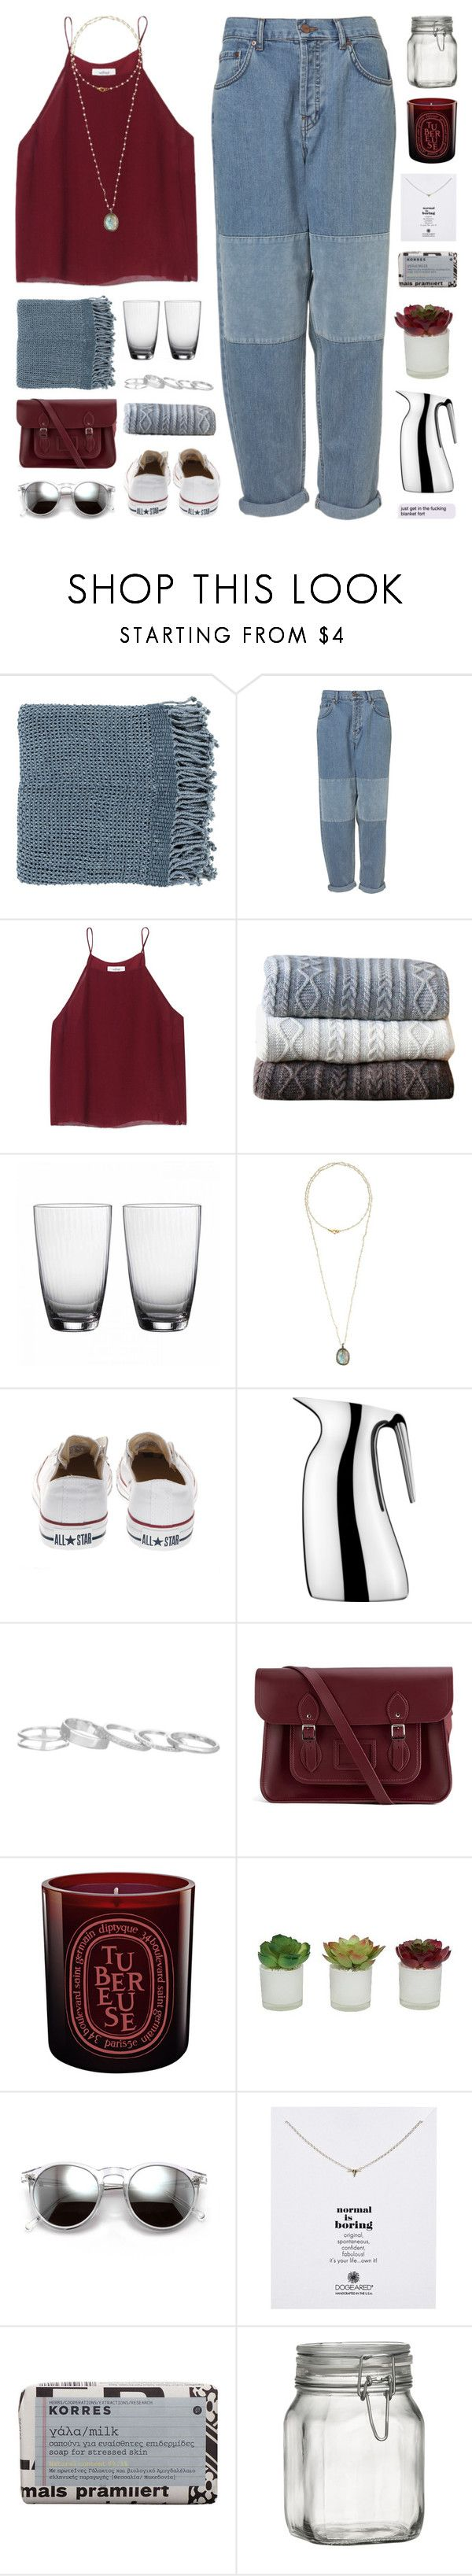 """""""blanket forts"""" by martosaur ❤ liked on Polyvore featuring Surya, Wilfred, Johanna Howard, Wedgwood, Bettina Duncan, Converse, Georg Jensen, Kendra Scott, The Cambridge Satchel Company and Diptyque"""